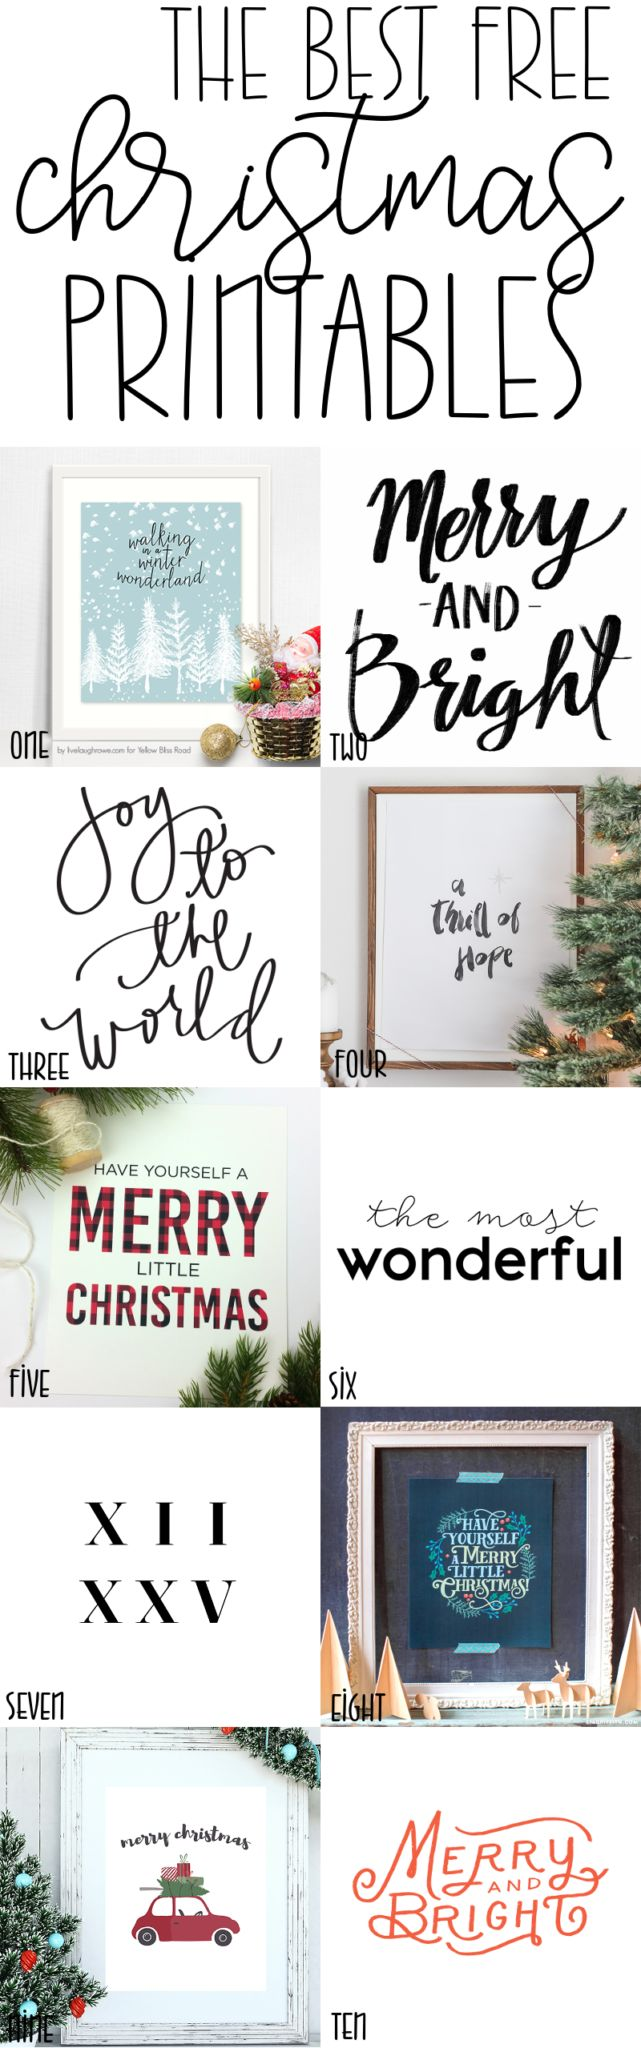 I've rounded up the 10 best free Christmas prints for you; these will make a great (and affordable) addition to your holiday décor!